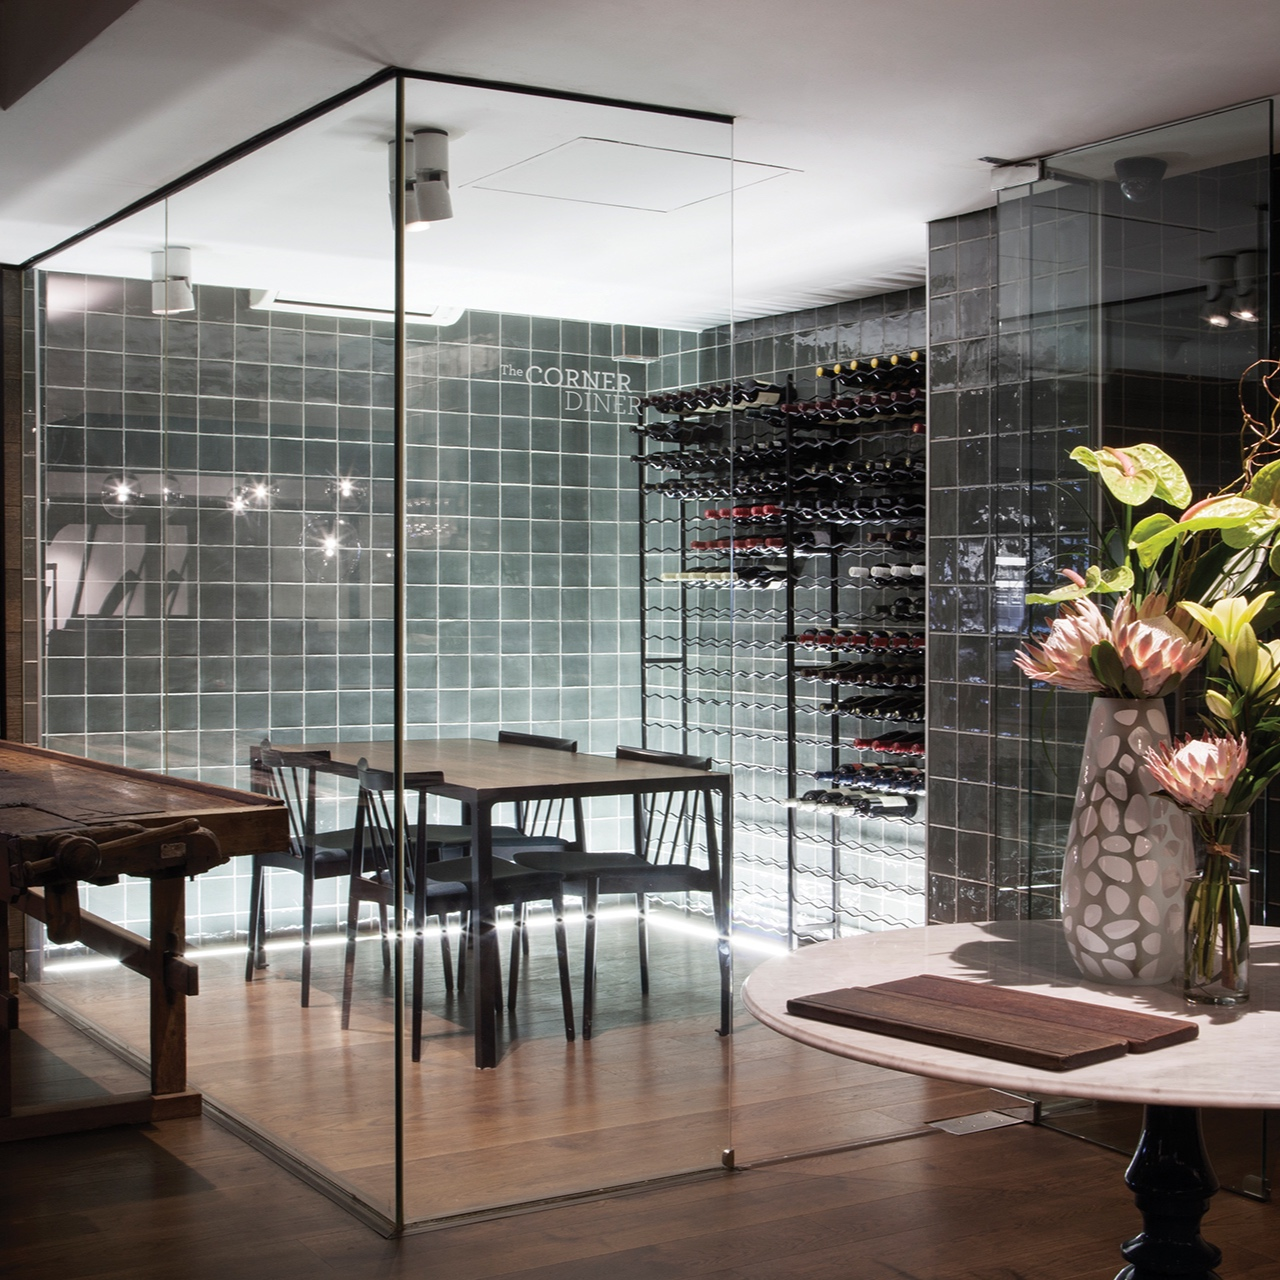 the corner diner - A unique cellar-like space with a striking glass façade and a backdrop of fine wines.